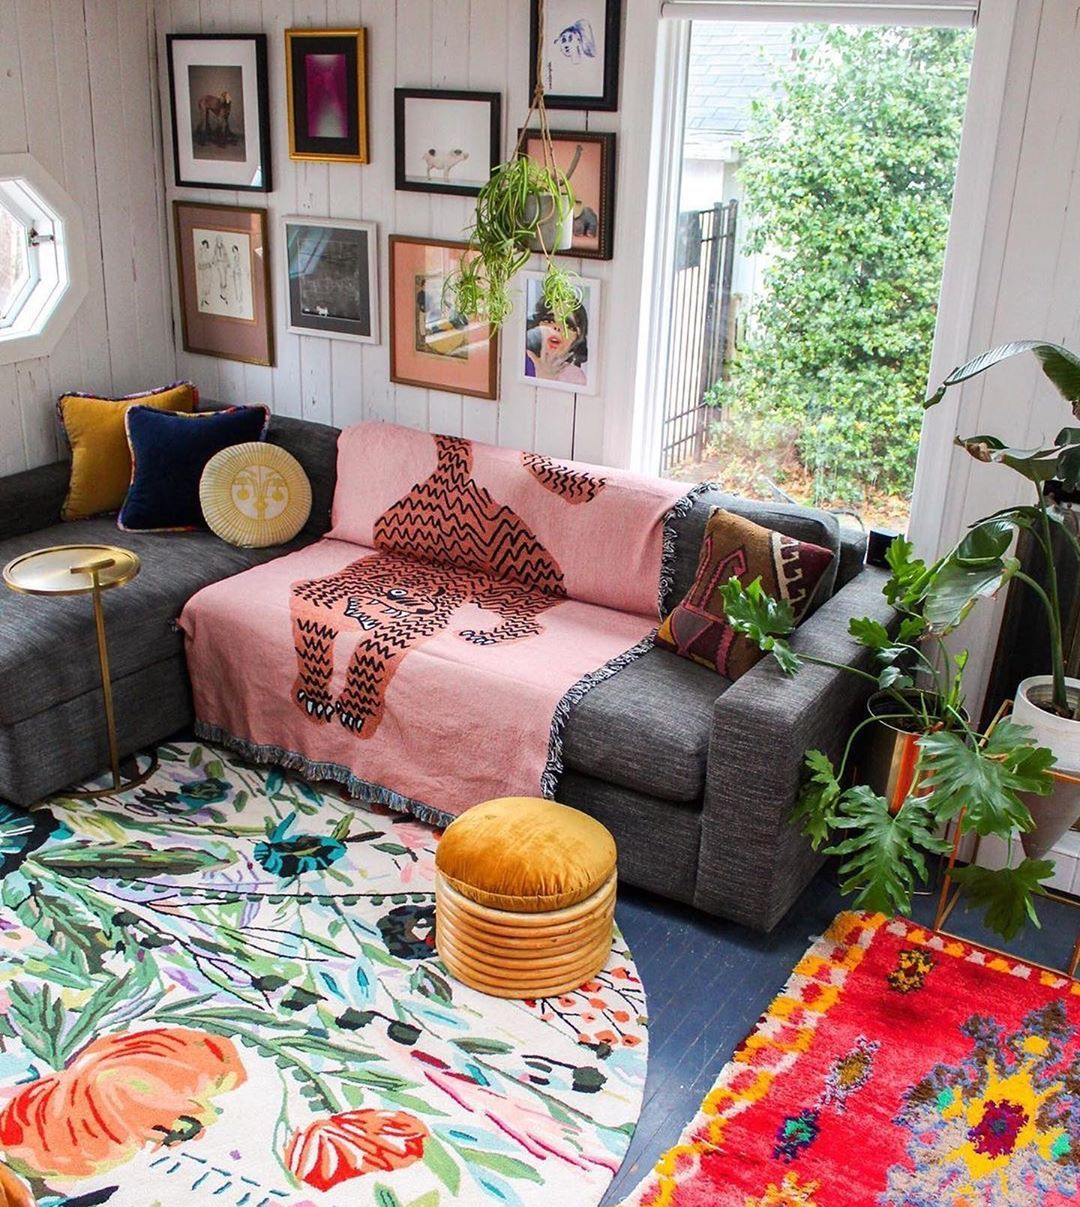 Pin By Emily Rowell On Hush Home Bohemian Living Room Decor Living Room Decor Apartment Decor Pictures about livingroom hush